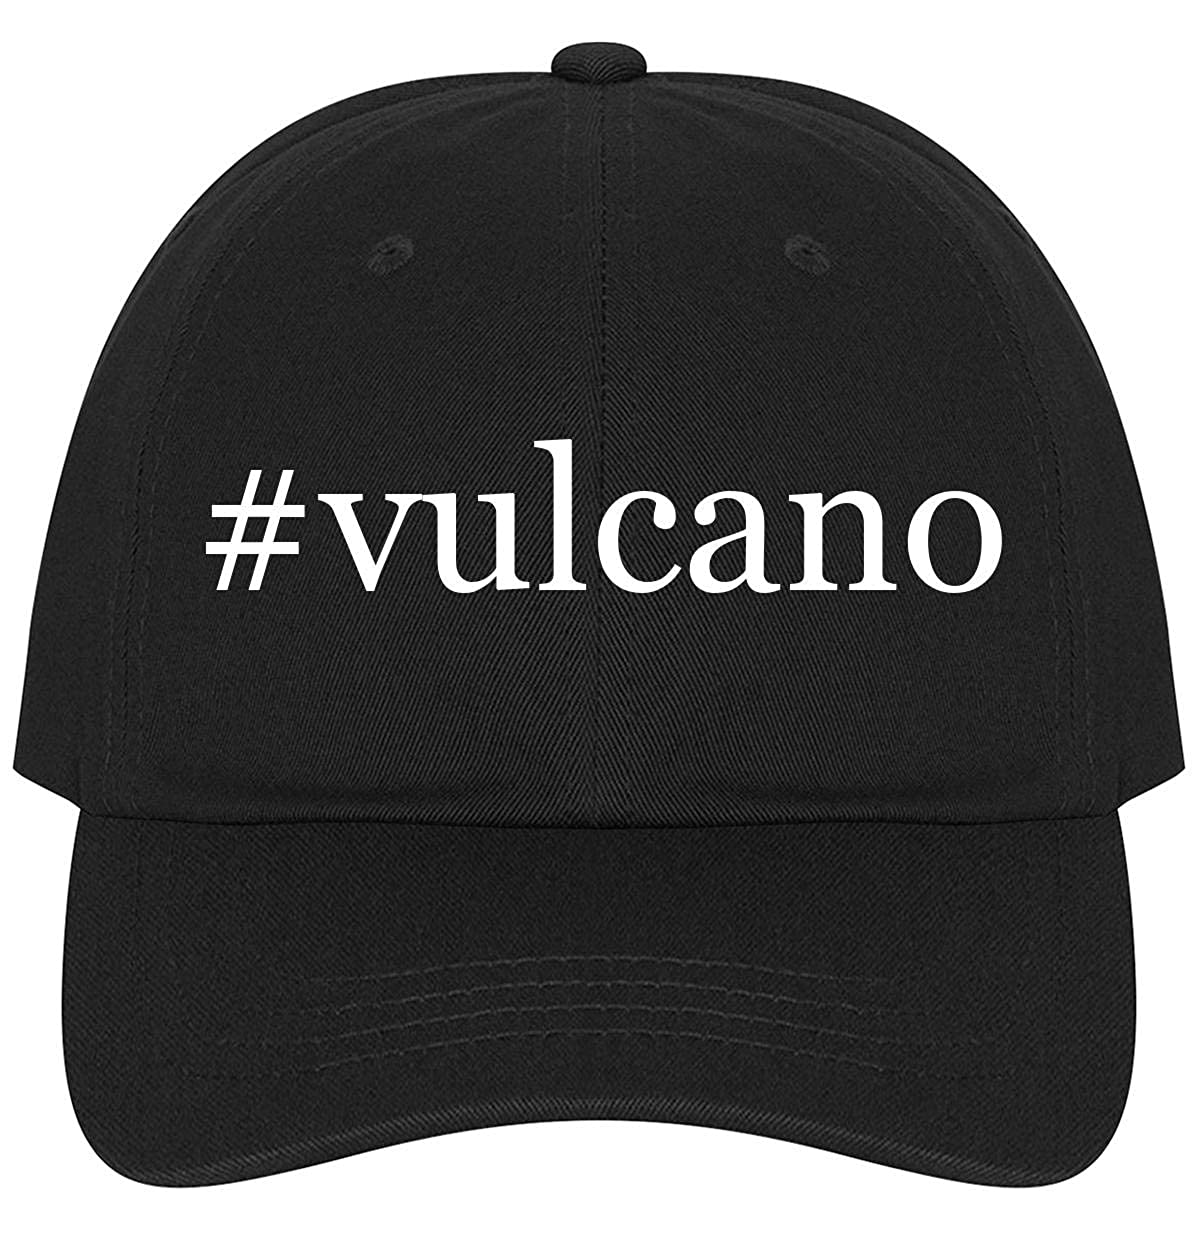 The Town Butler #Vulcano A Nice Comfortable Adjustable Hashtag Dad Hat Cap